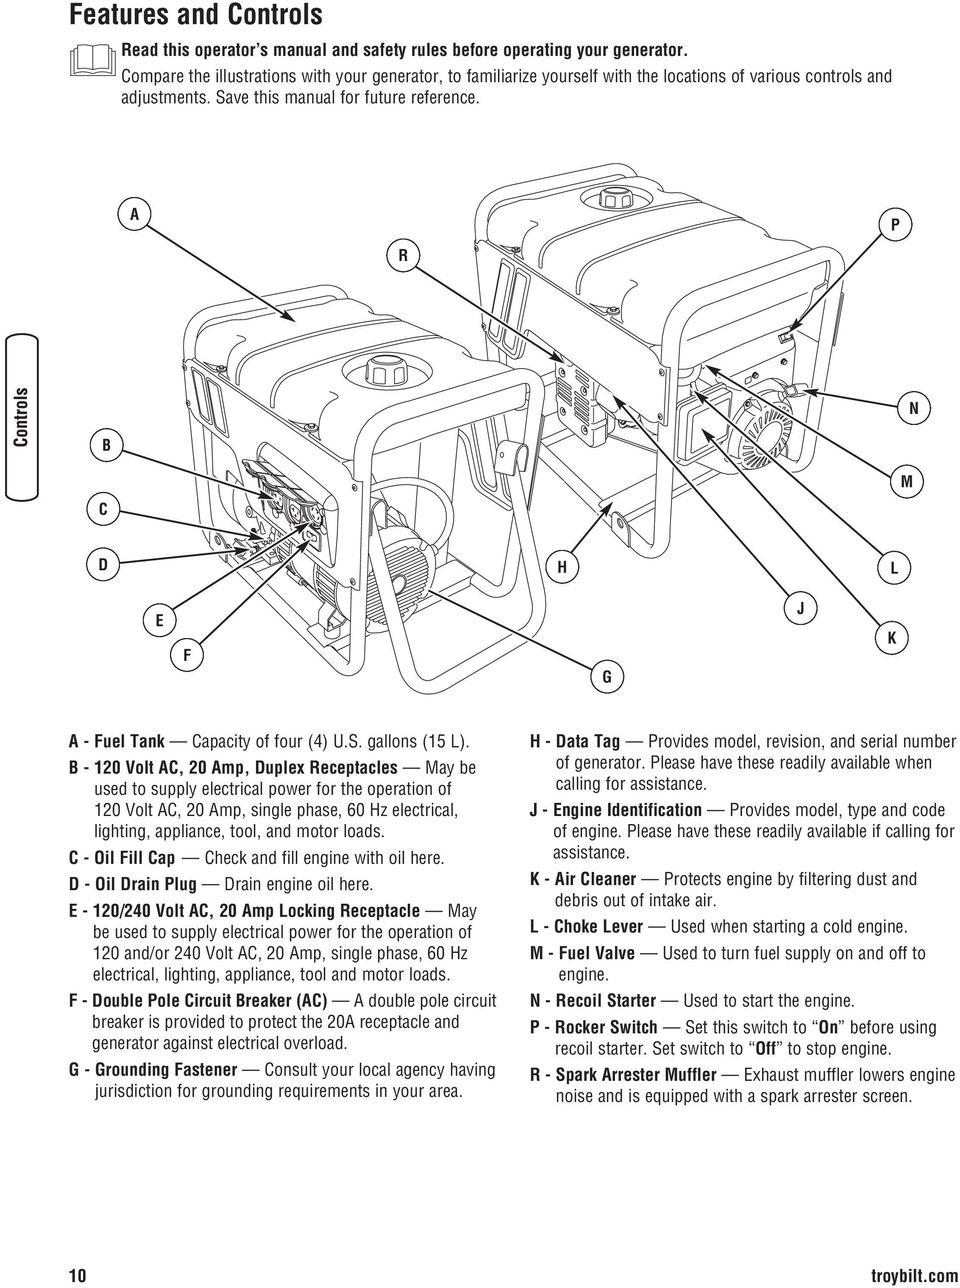 Operator S Manual Watt Portable Generator Briggs Stratton Power 120 Volt Wiring Diagram A P R N B C M D H L E F G J K Fuel Tank Capacity Of Four 4 Us Gallons 15